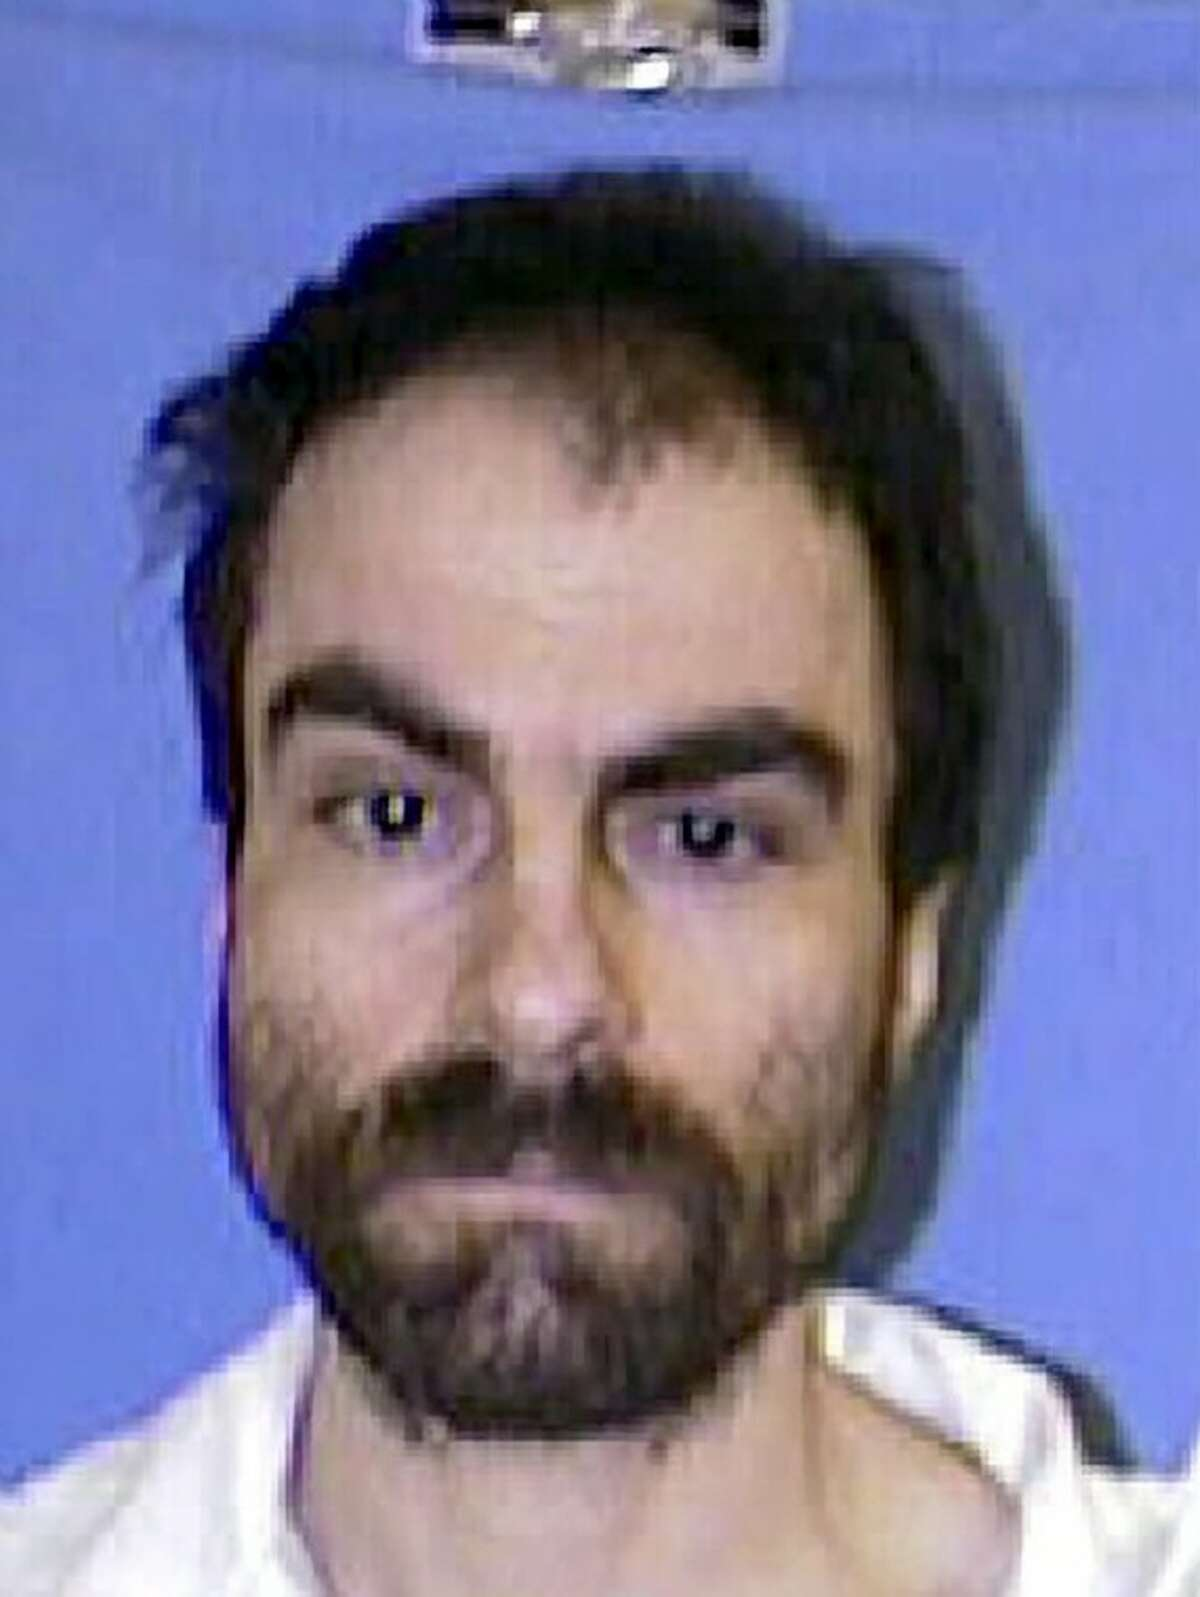 This undated file photo provided by the Texas Department of Criminal Justice, shows Texas death row inmate Steven Staley. The outcome of legal wrangling about Staleyís mental health is likely to determine if the former laborer from Denver is put to death this week in Texas for a slaying almost 25 years ago in Fort Worth.